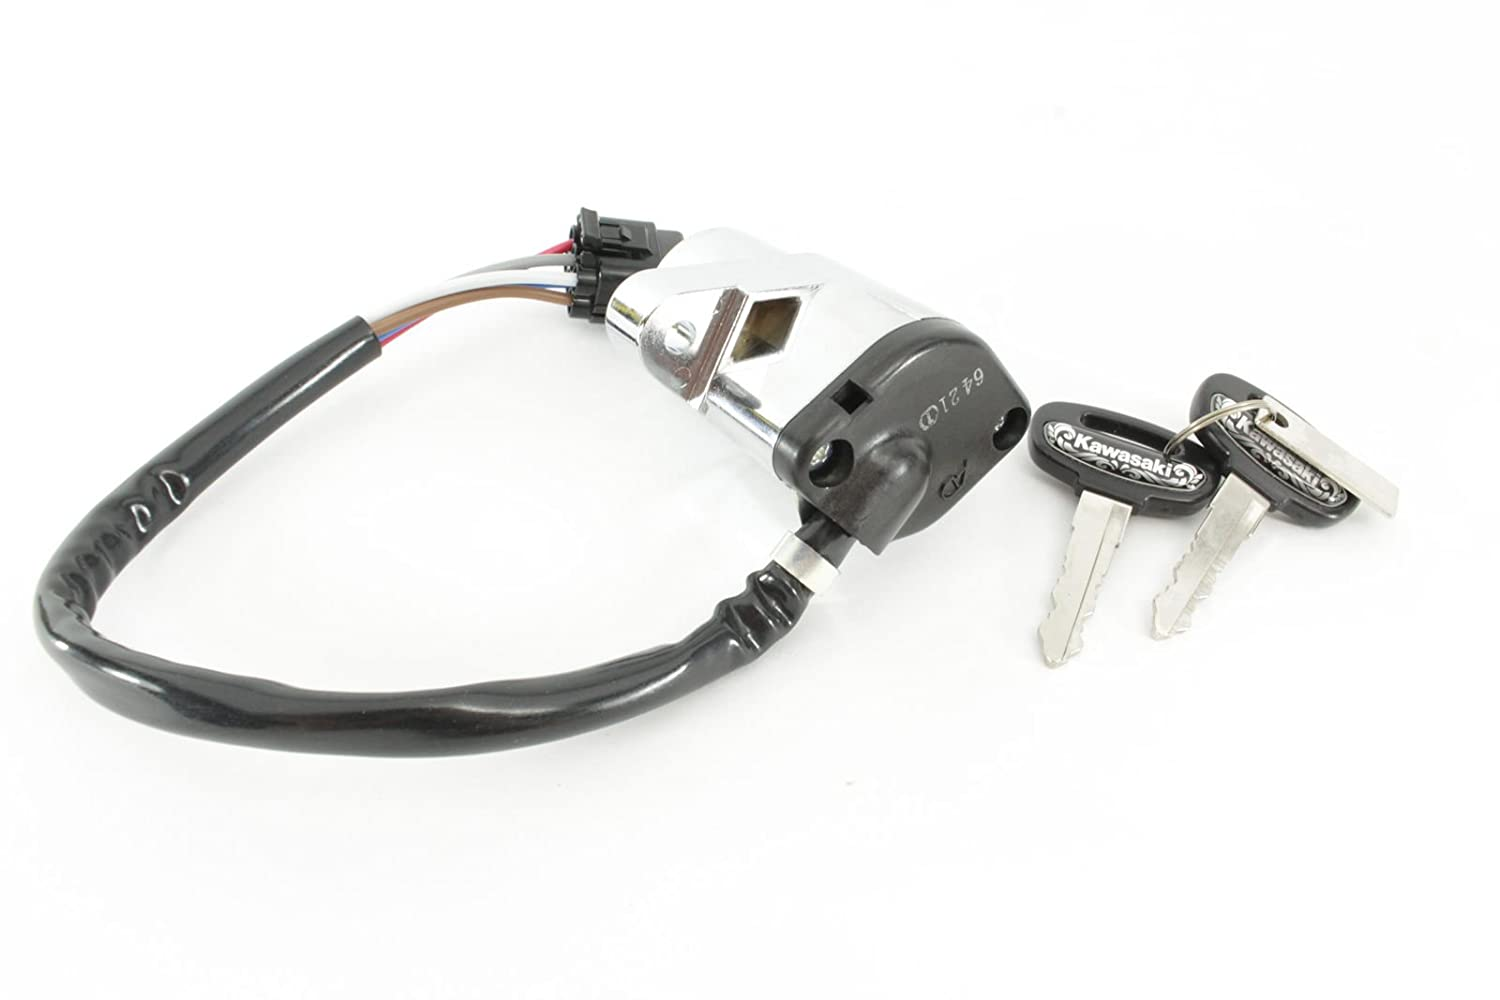 Kawasaki 2001-2008 Vulcan 1500 Classic Vulcan 1500 Nomad Ignition Assembly Switch 27005-1256 New Oem